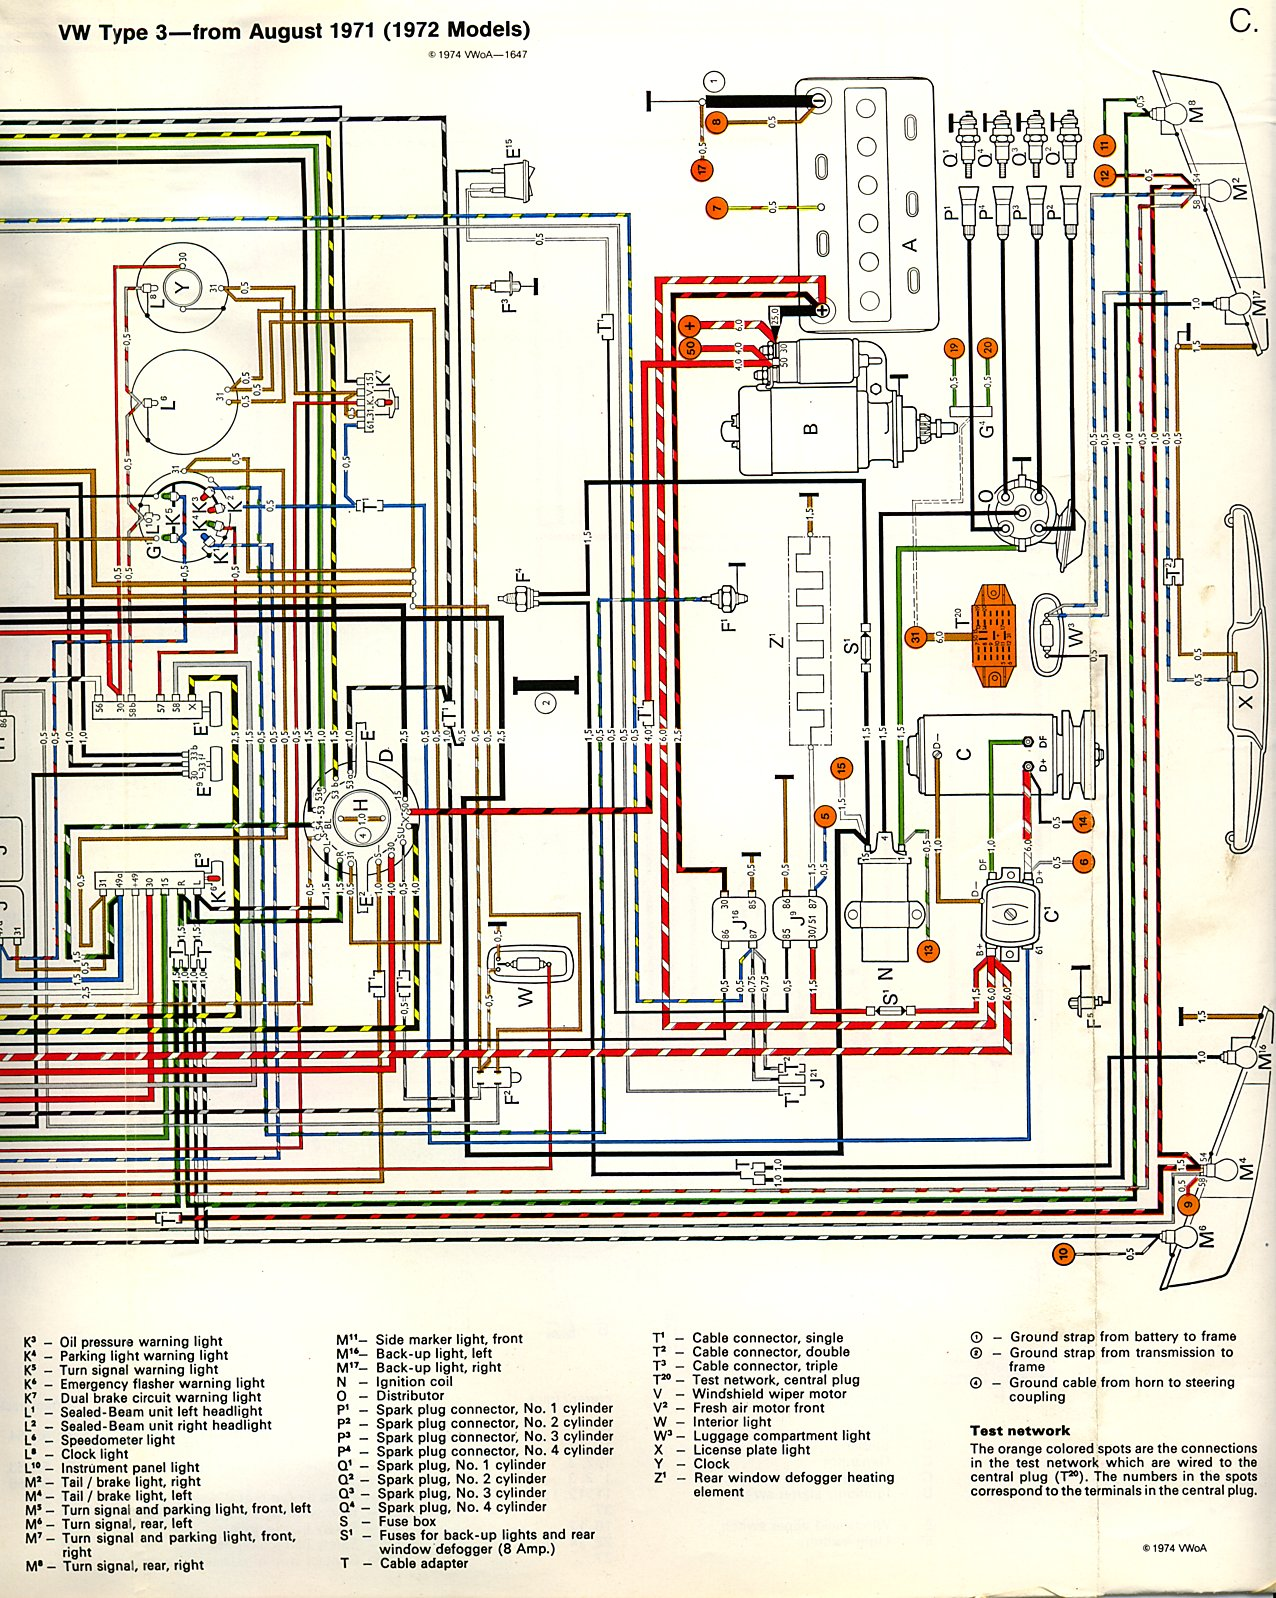 hight resolution of 1973 vw type 3 wiring diagram wiring diagram thesamba com type 3 wiring diagrams1973 vw type